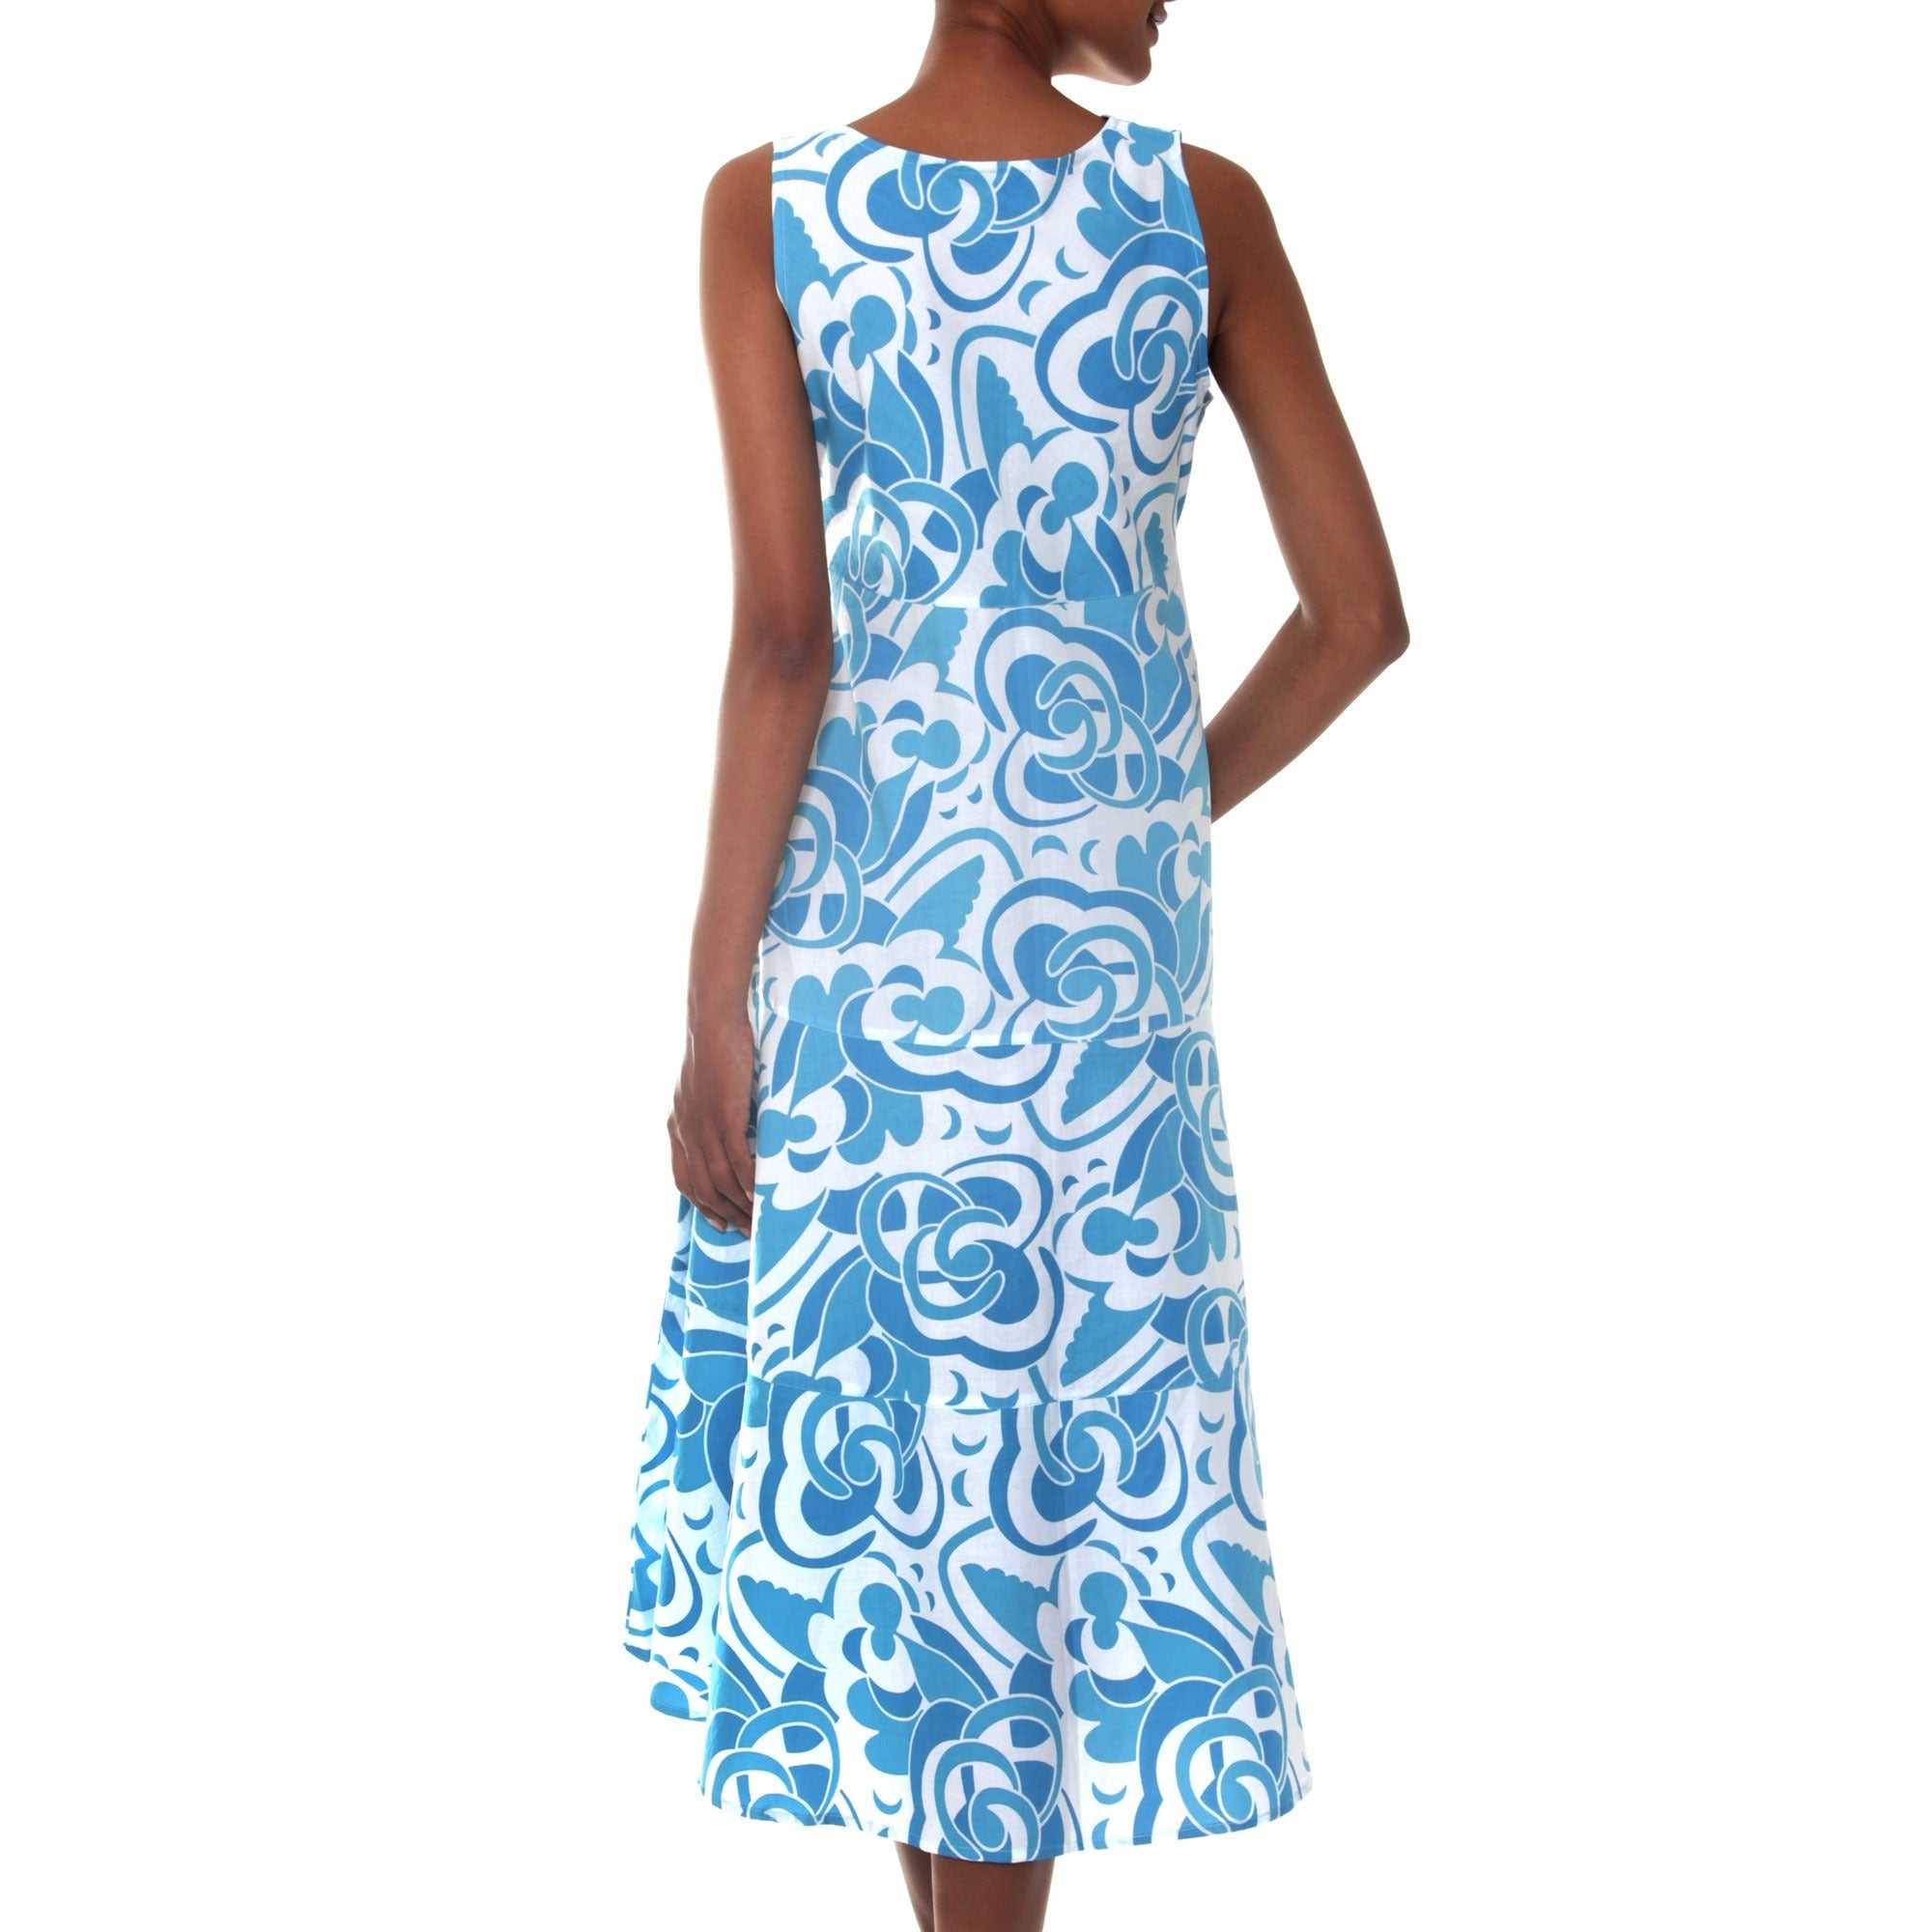 Shop Handmade Cotton \'Bali Blue\' Batik Dress Made In Indonesia - On ...